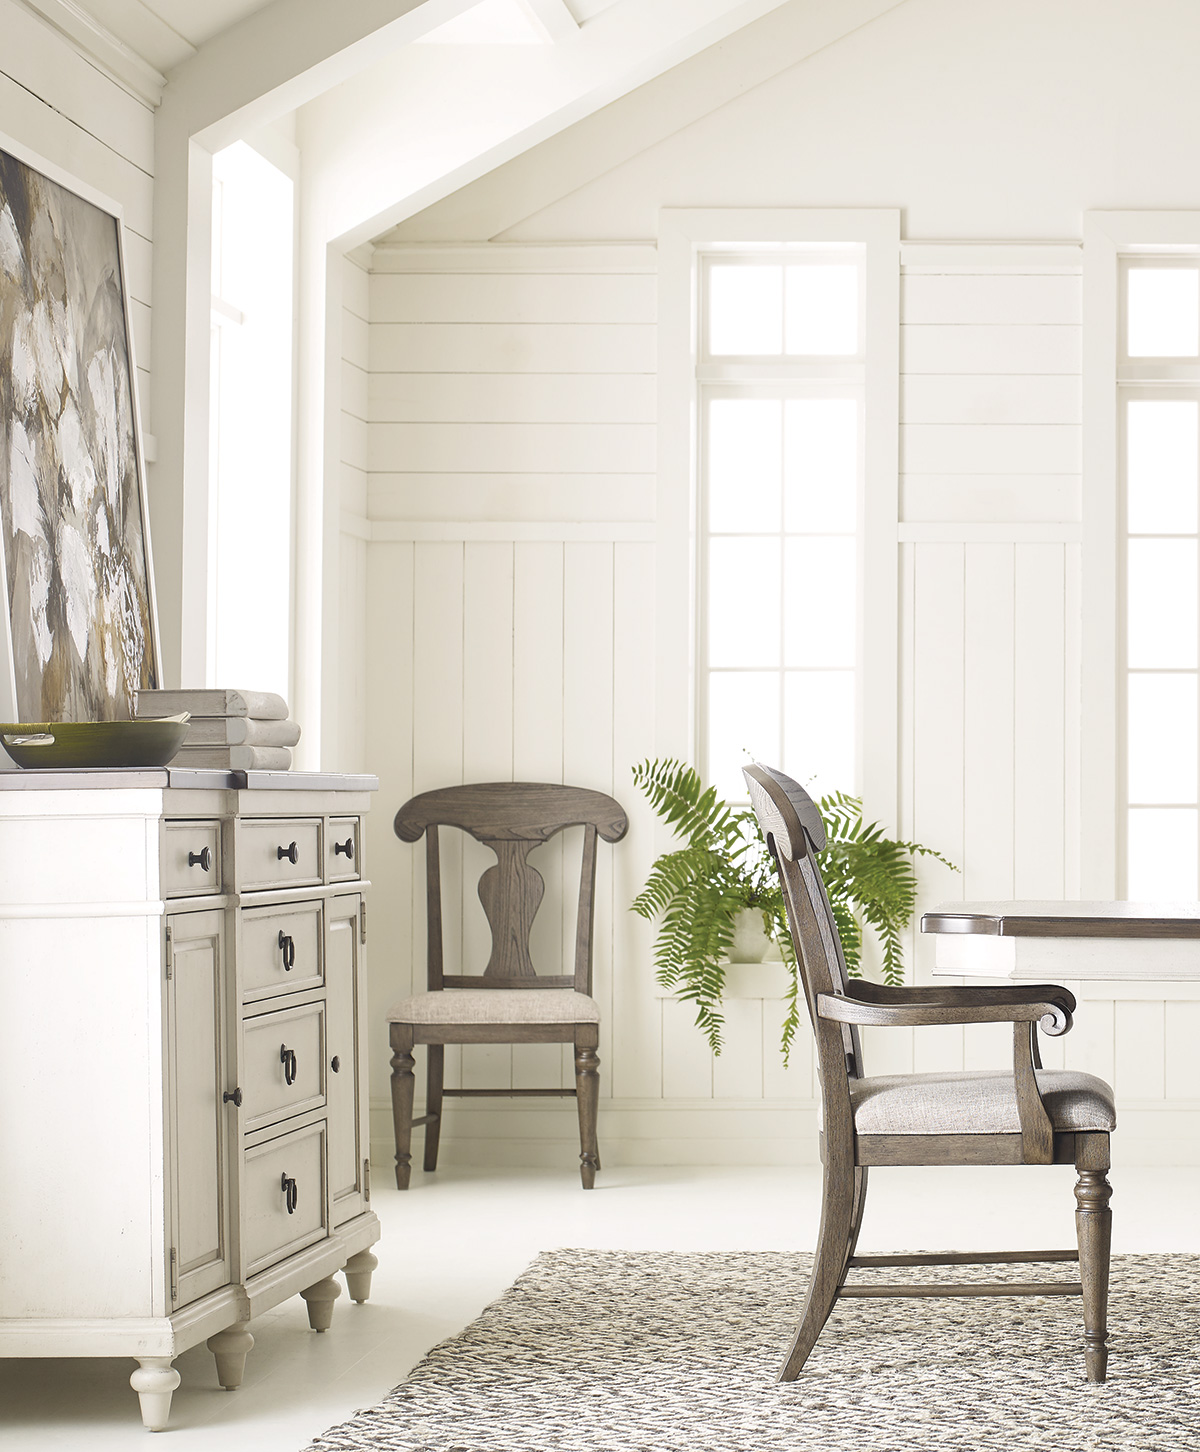 Dining room storage with a traditional farmhouse style